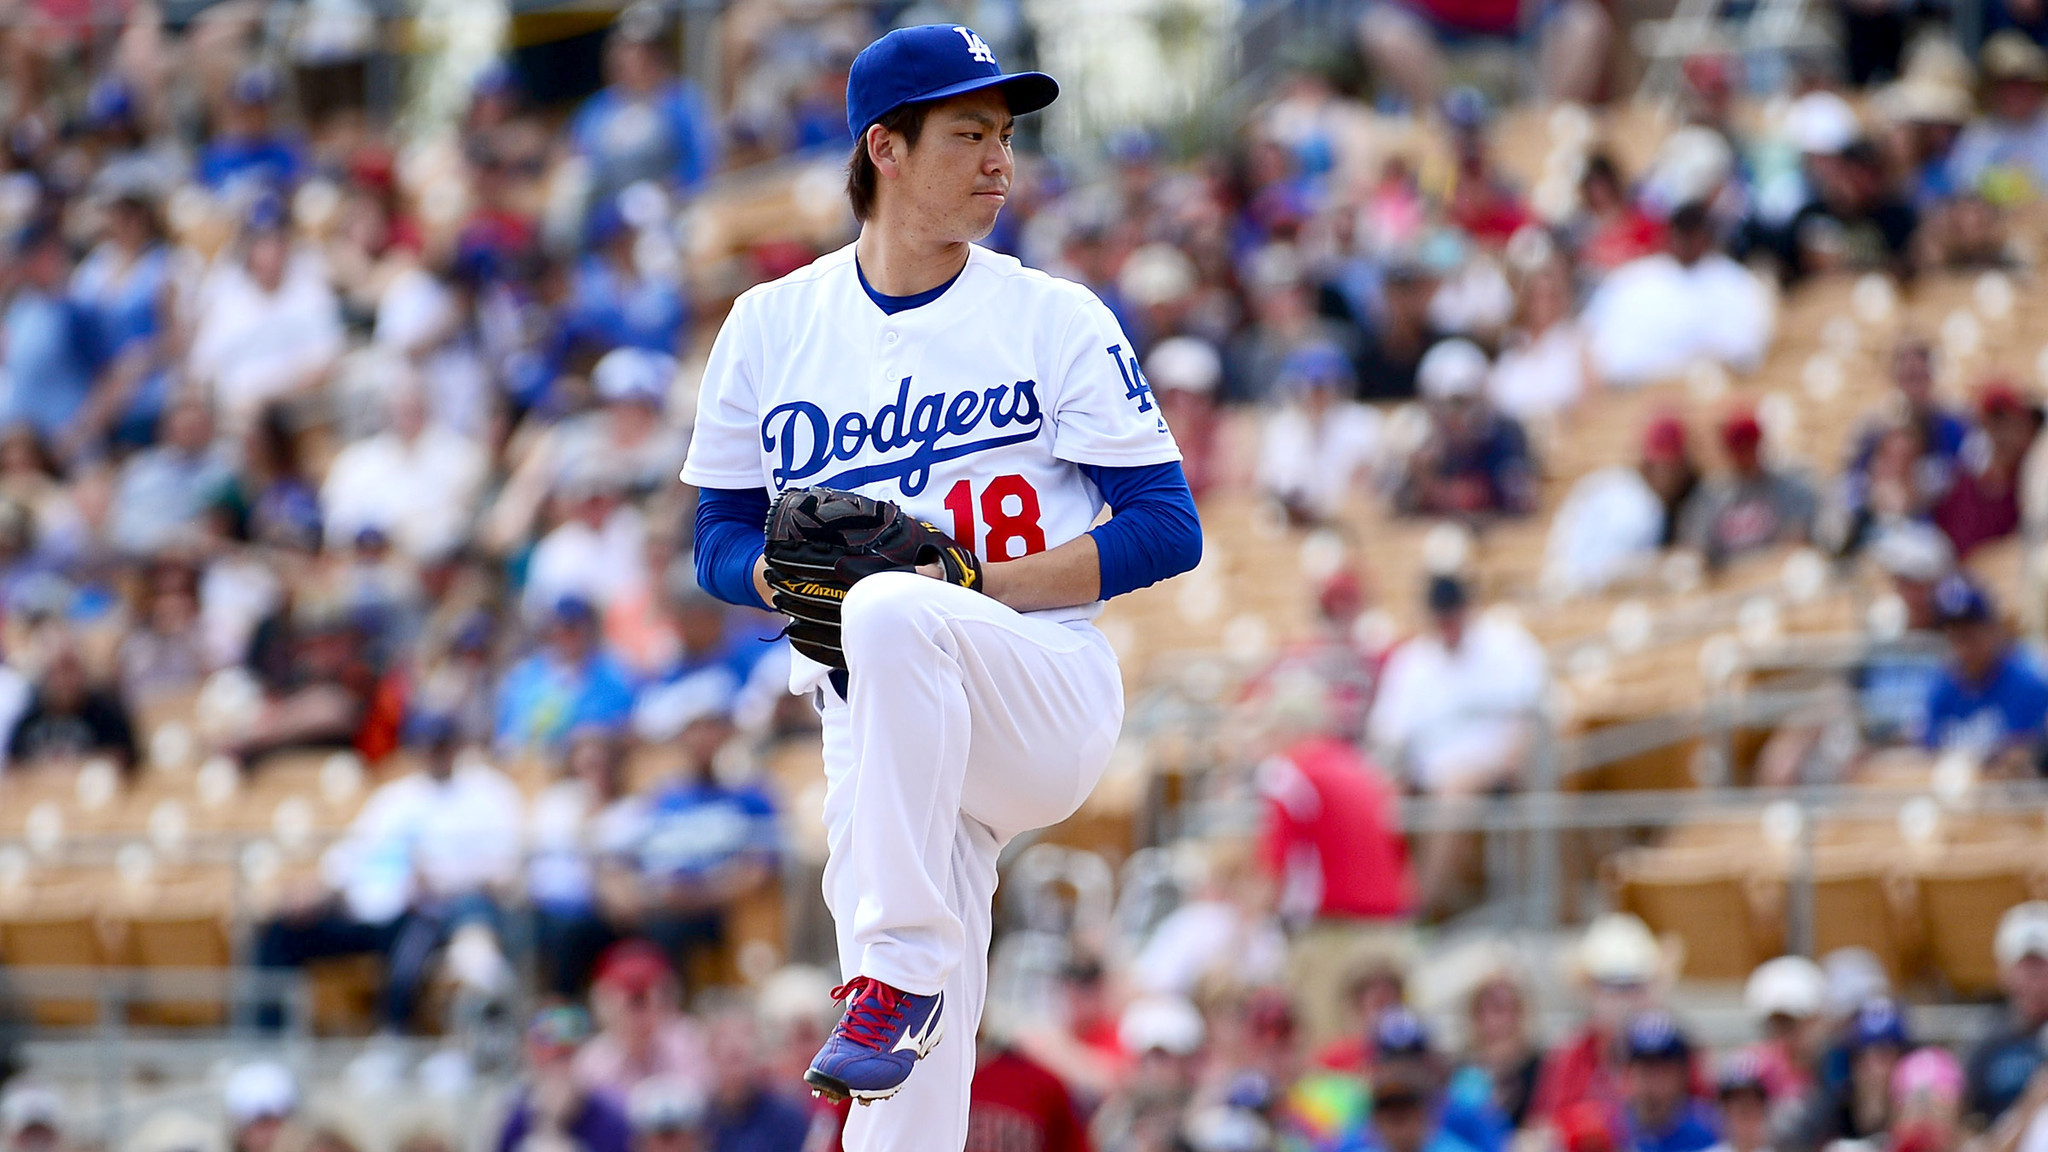 MLB Betting Giants Dodgers 4-17